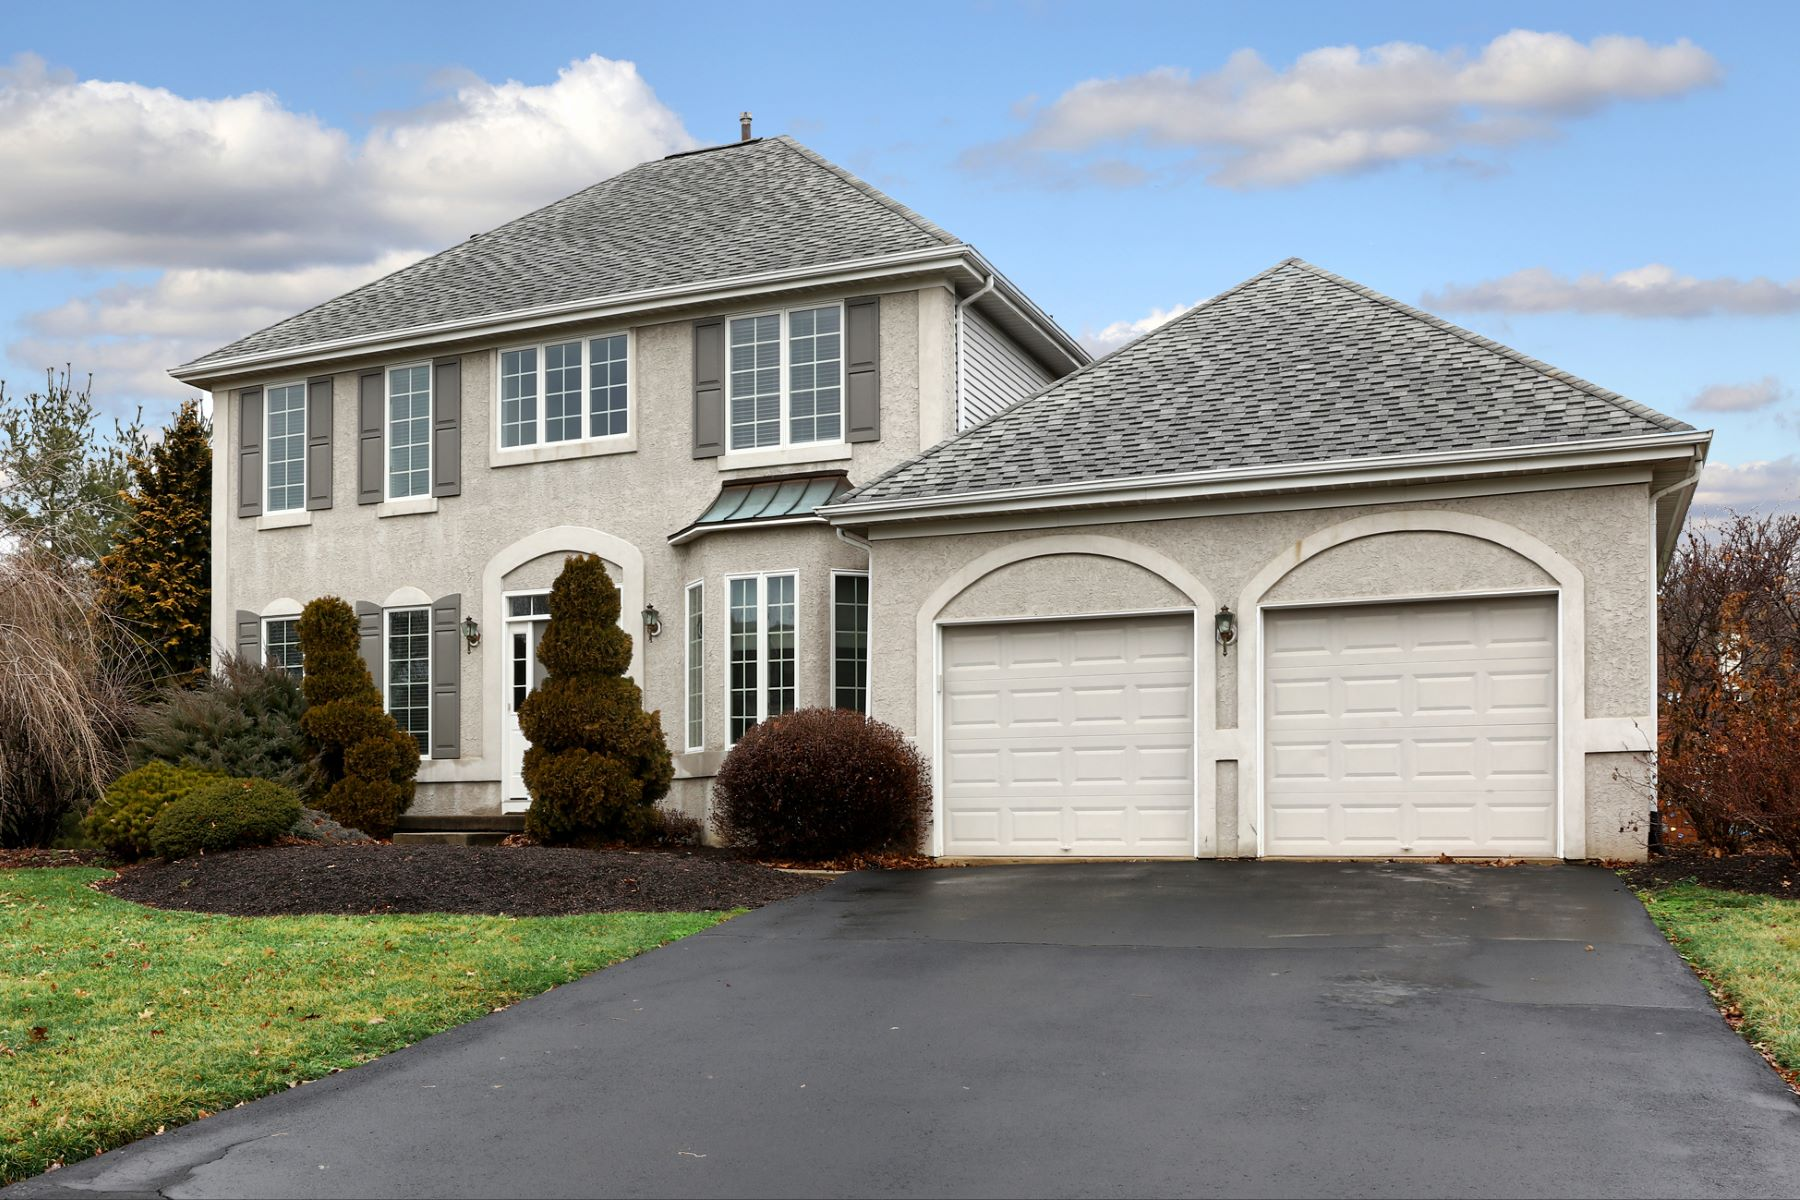 Lovely Colonial in Woodside 10 Milburne Lane, Robbinsville, New Jersey 08691 United States